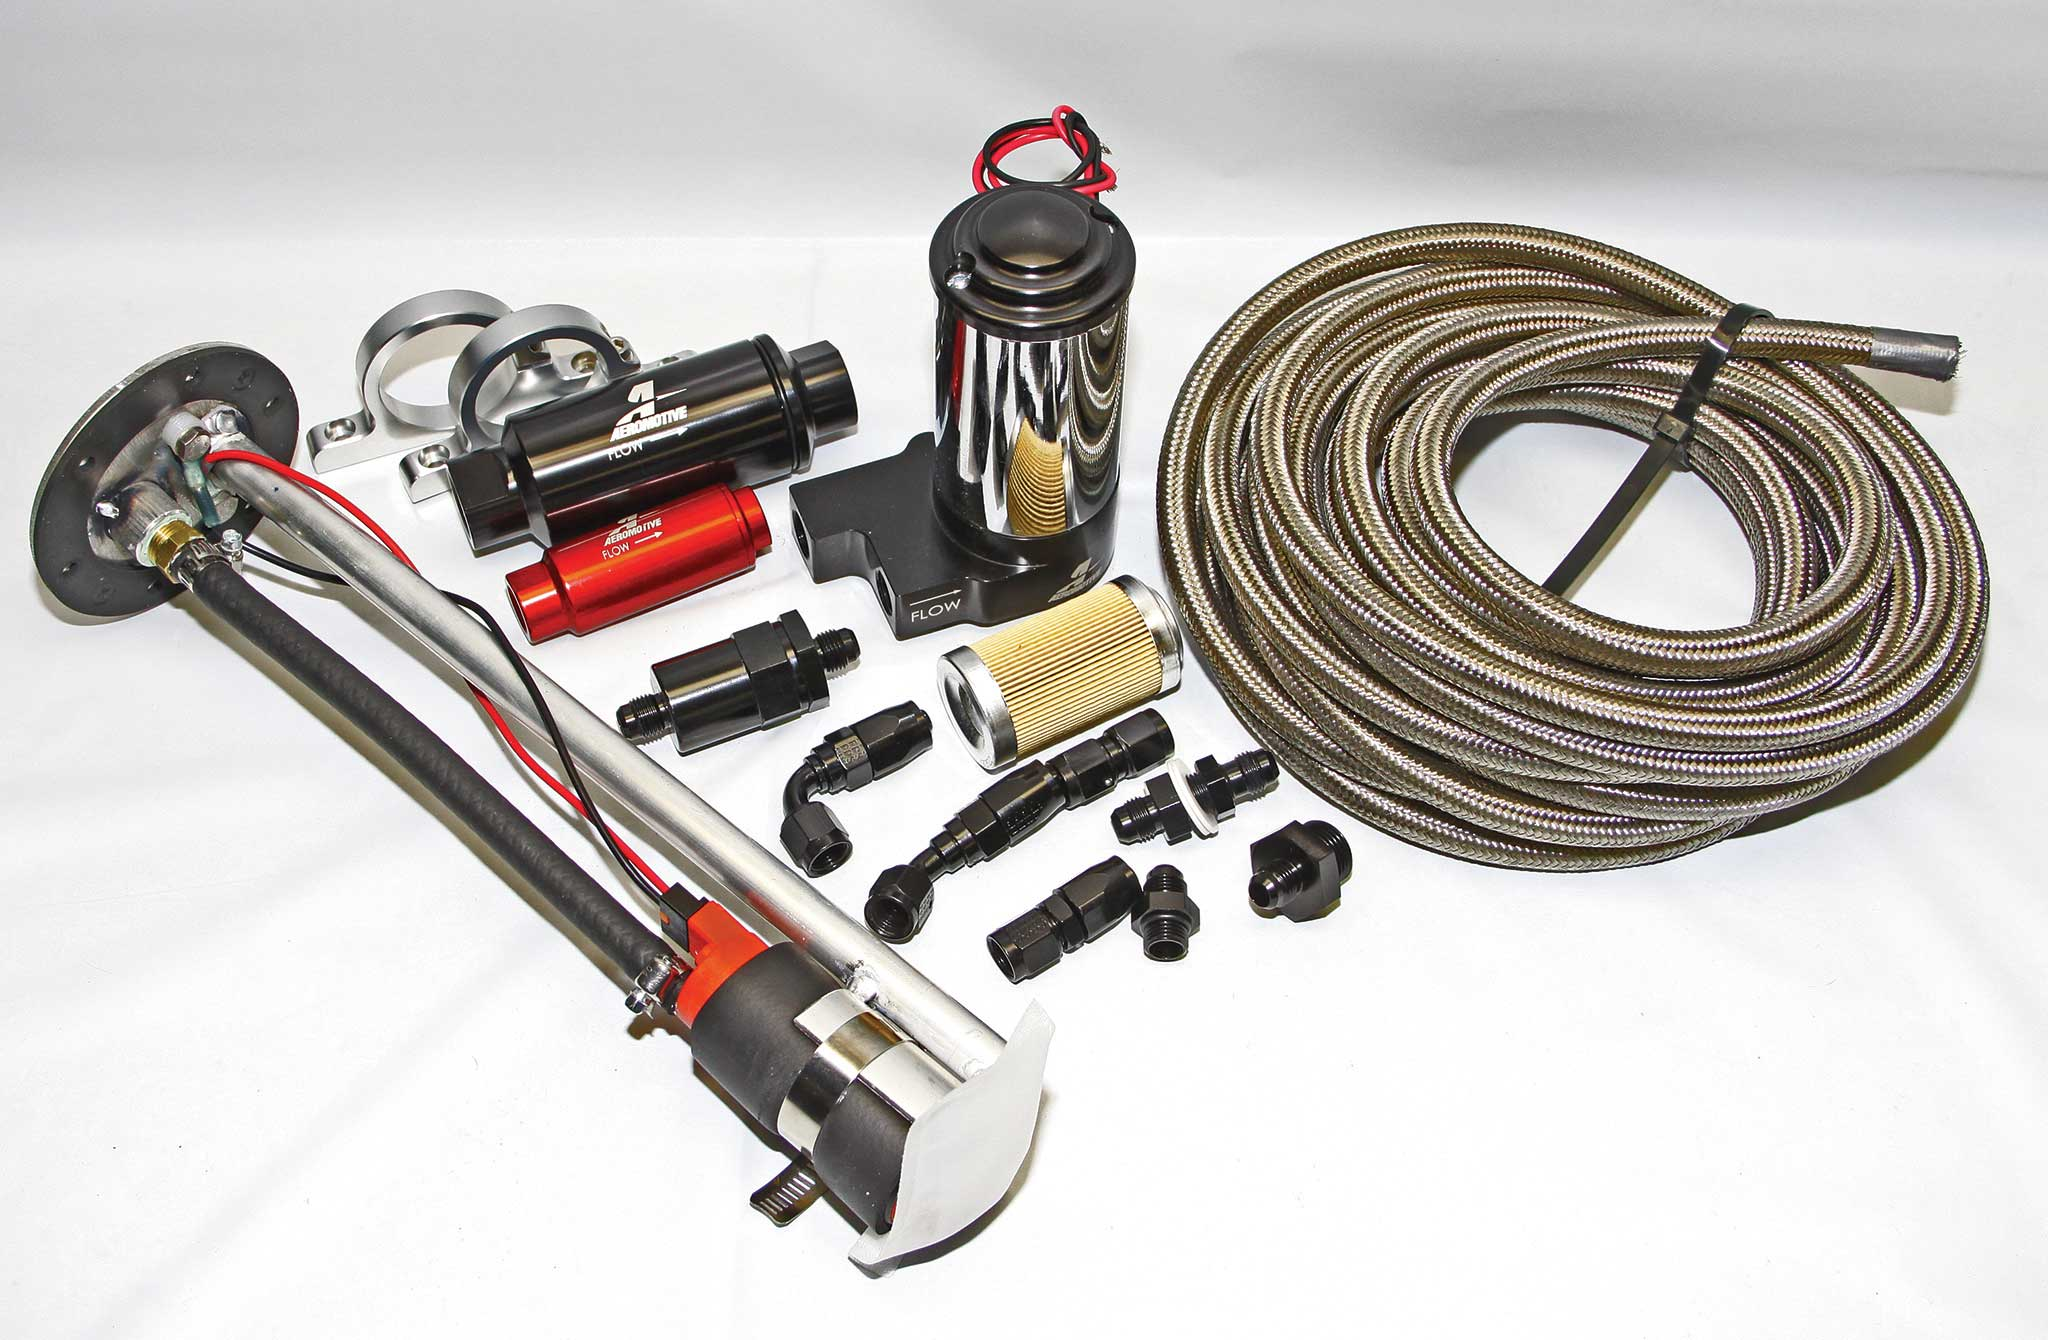 When it comes to fuel system components, Aeromotive can supply all the parts required to feed any engine.